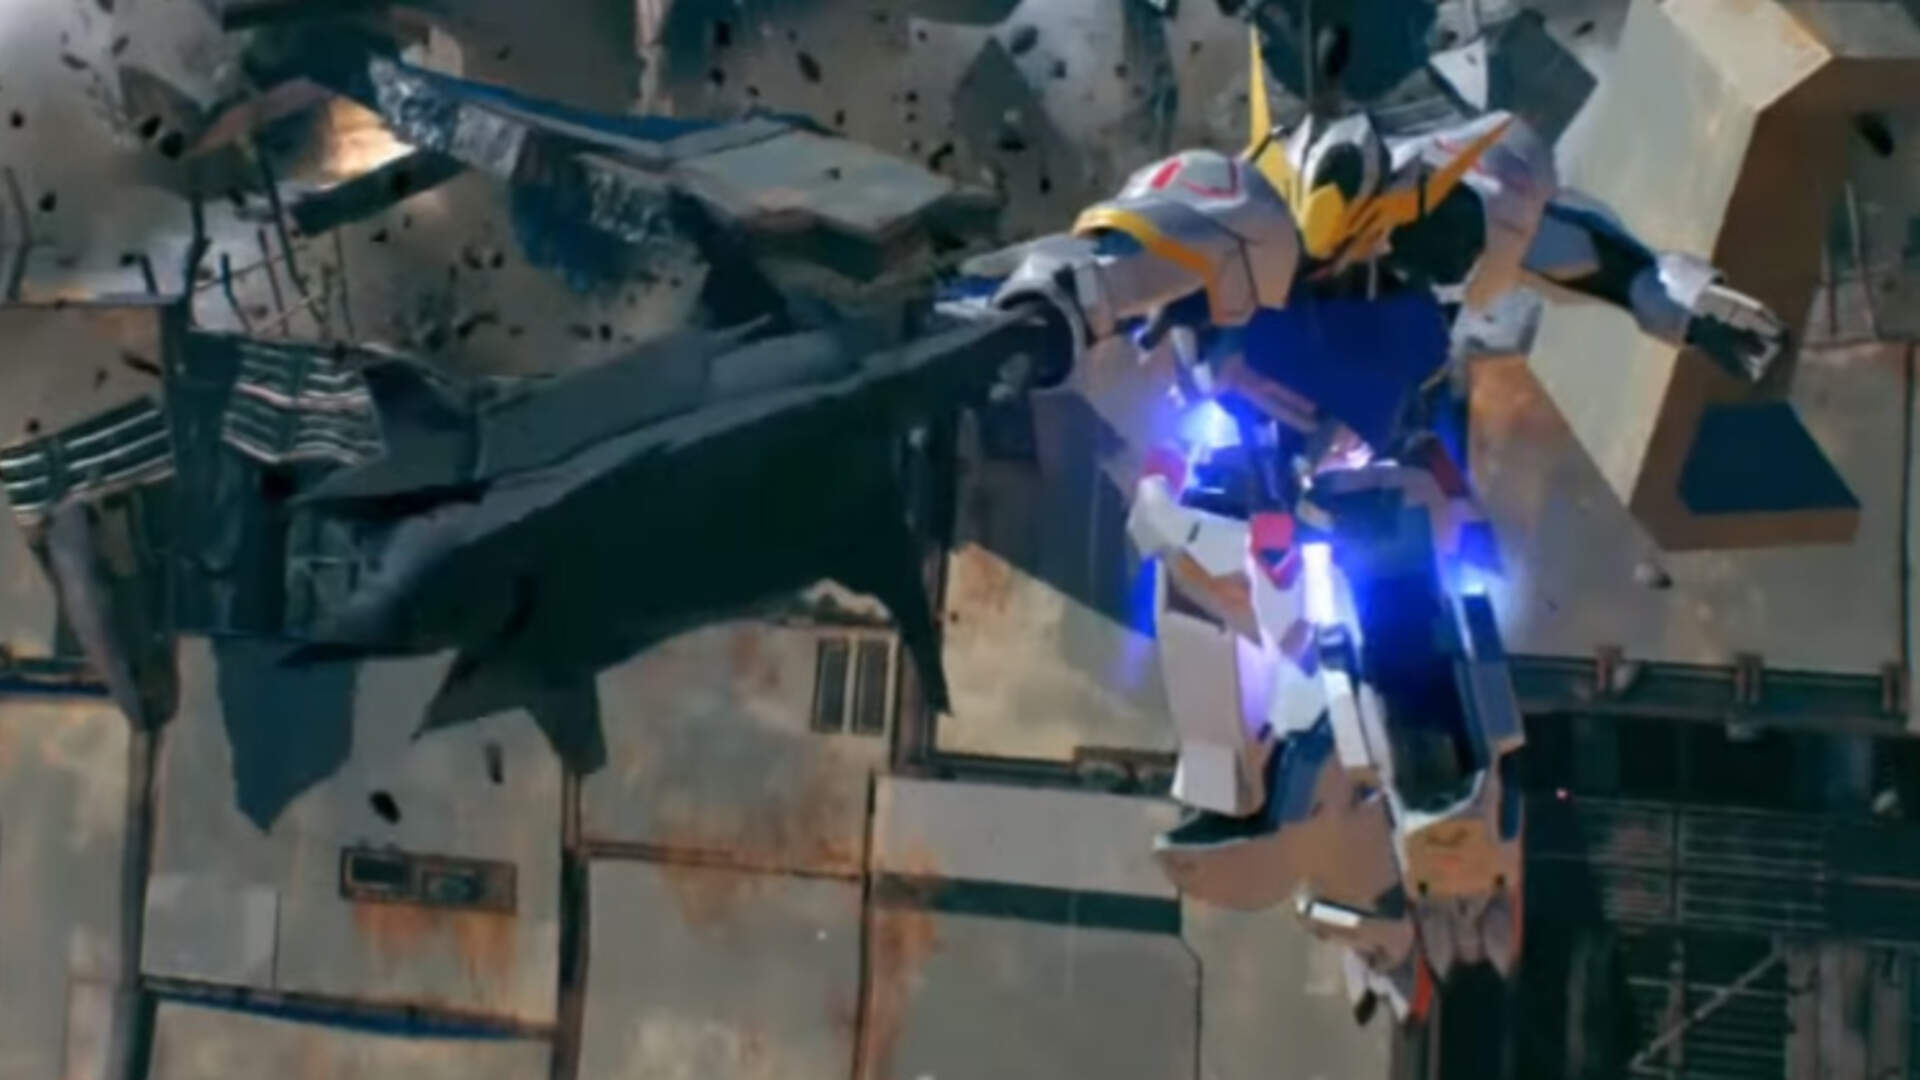 Gundam Versus Highlights Japan's Move To PS4 at the Expense Of Arcades